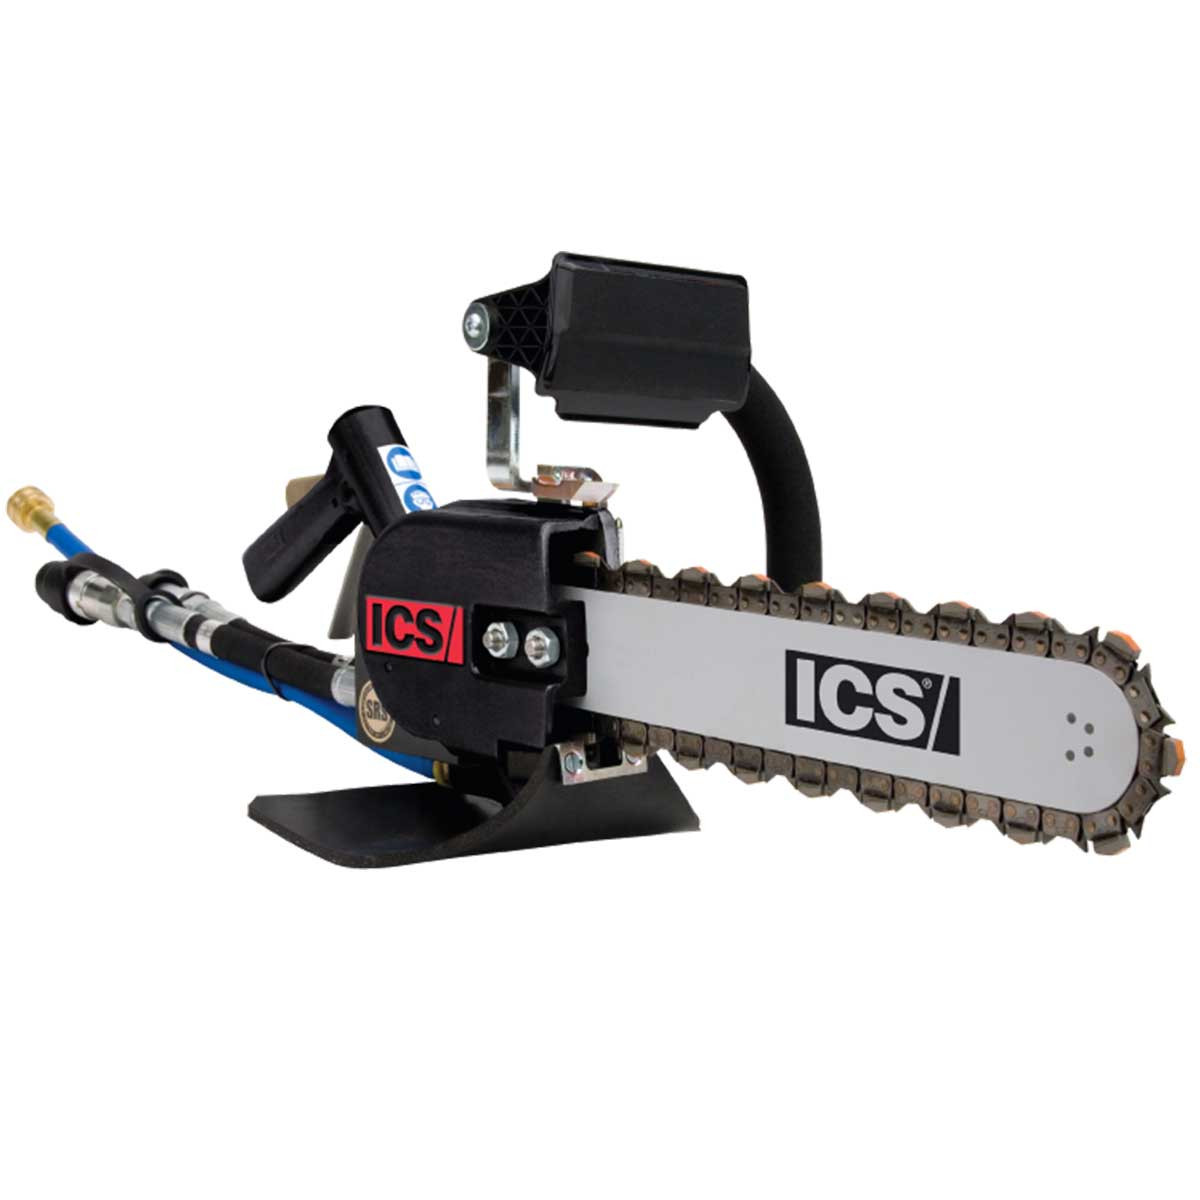 ICS Hydraulic Concrete Chain saw